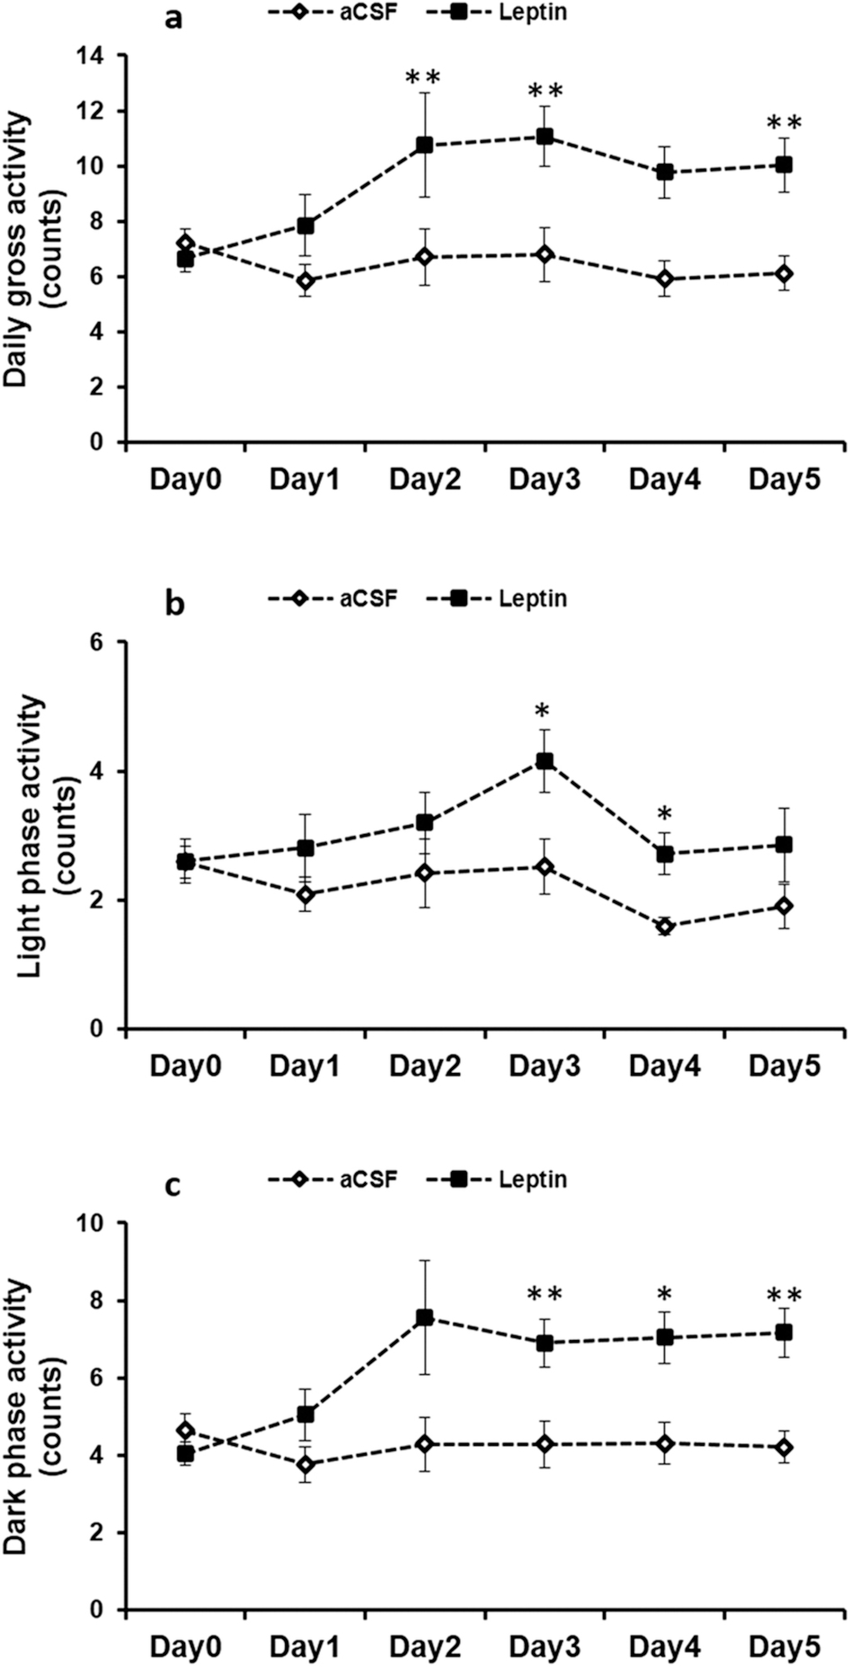 hight resolution of daily physical activity a light phase activity b and dark phase